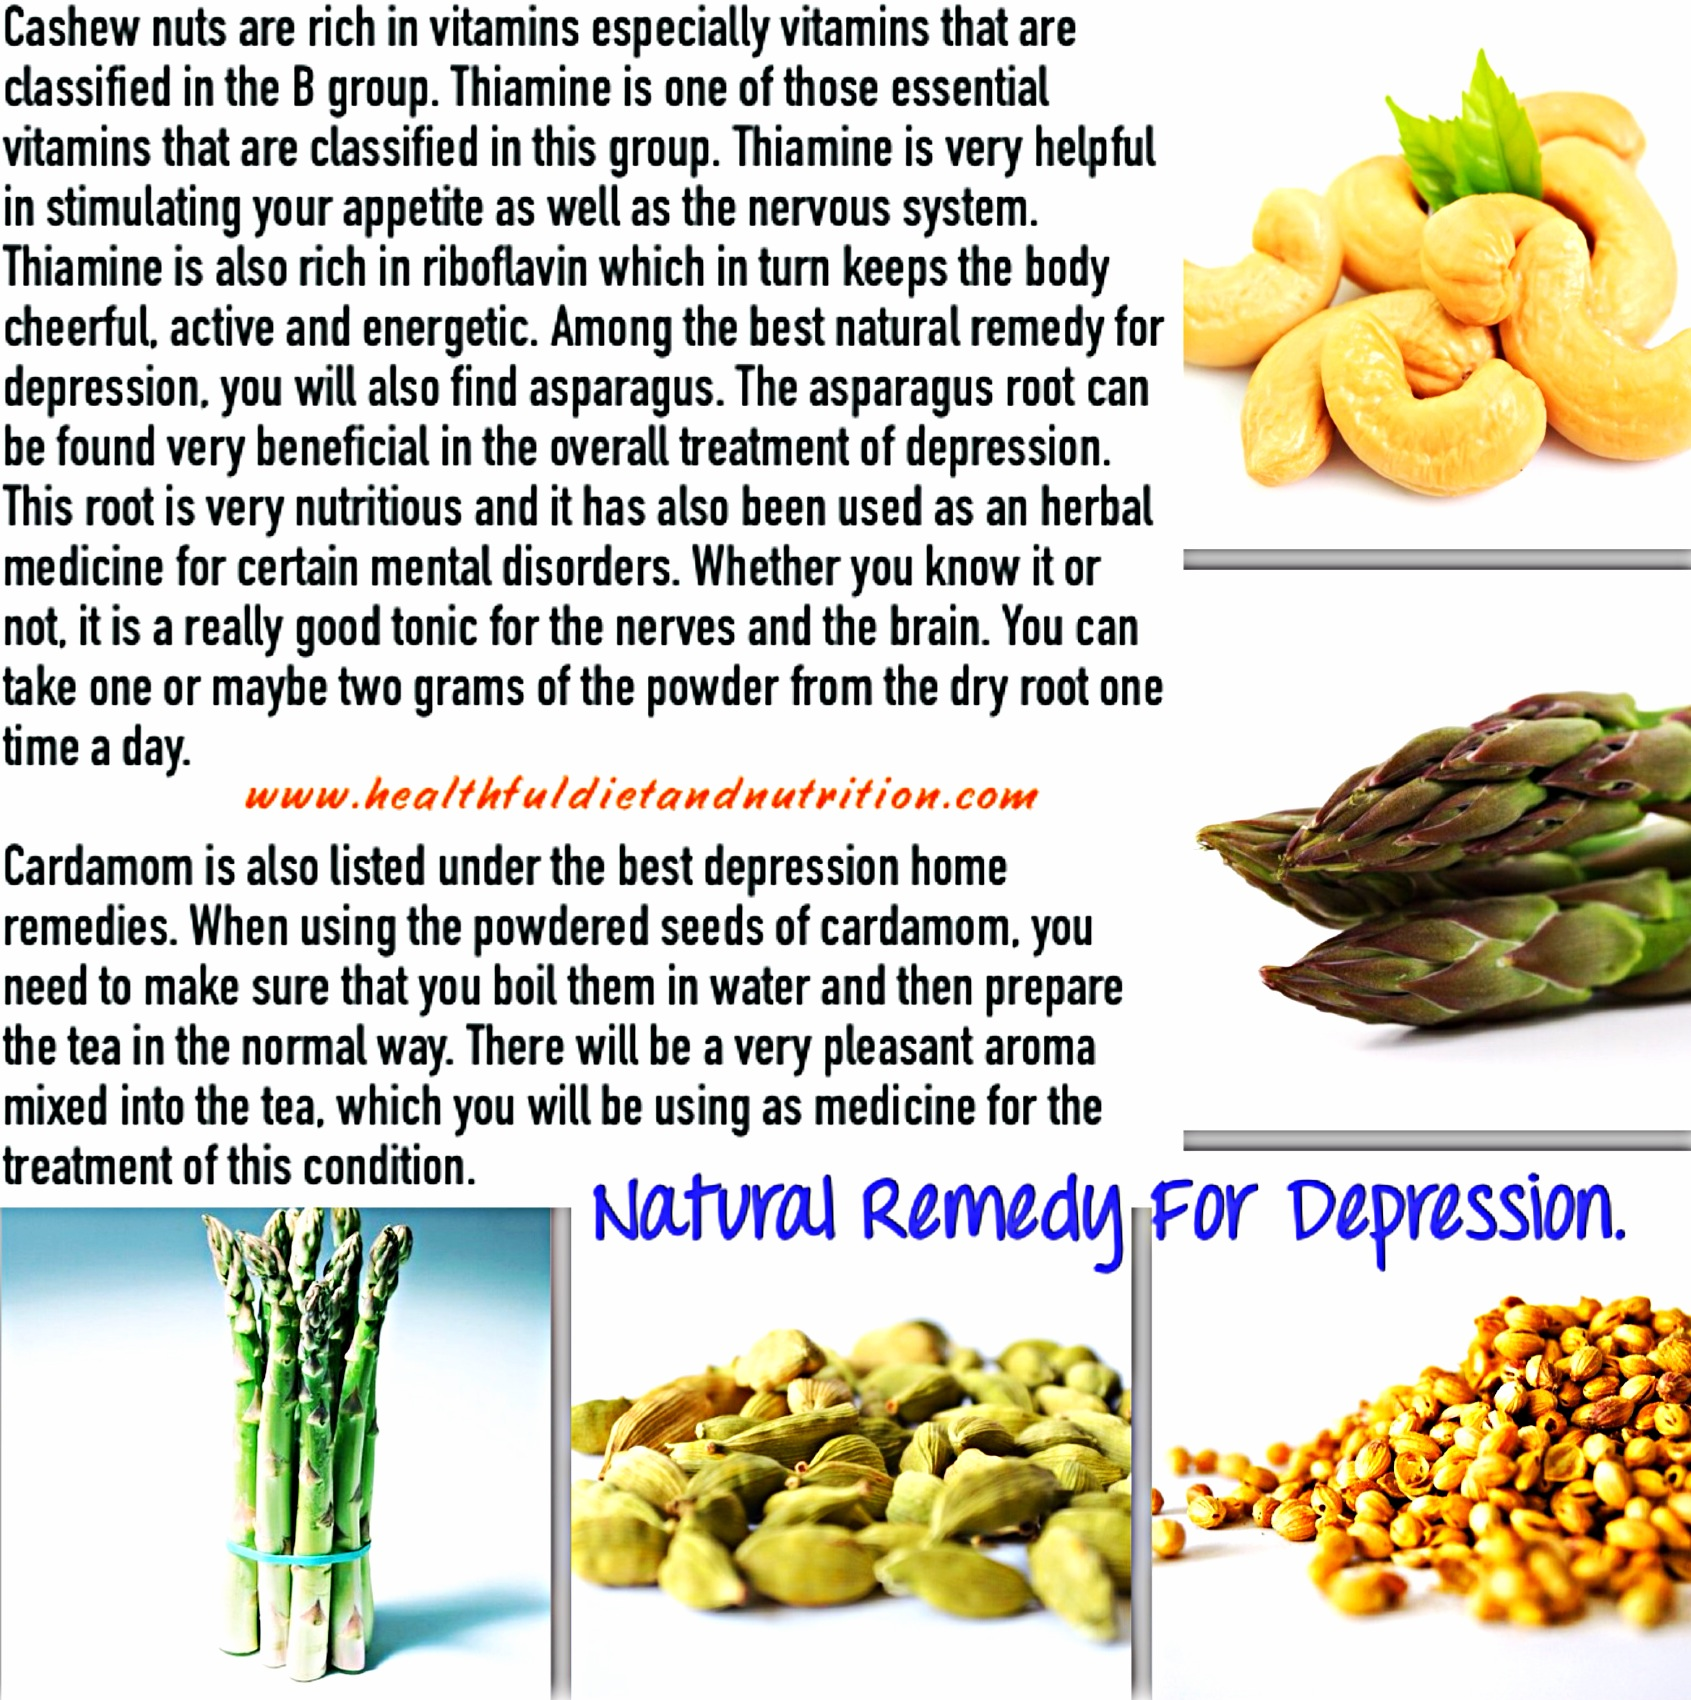 Natural Remedy For Depression